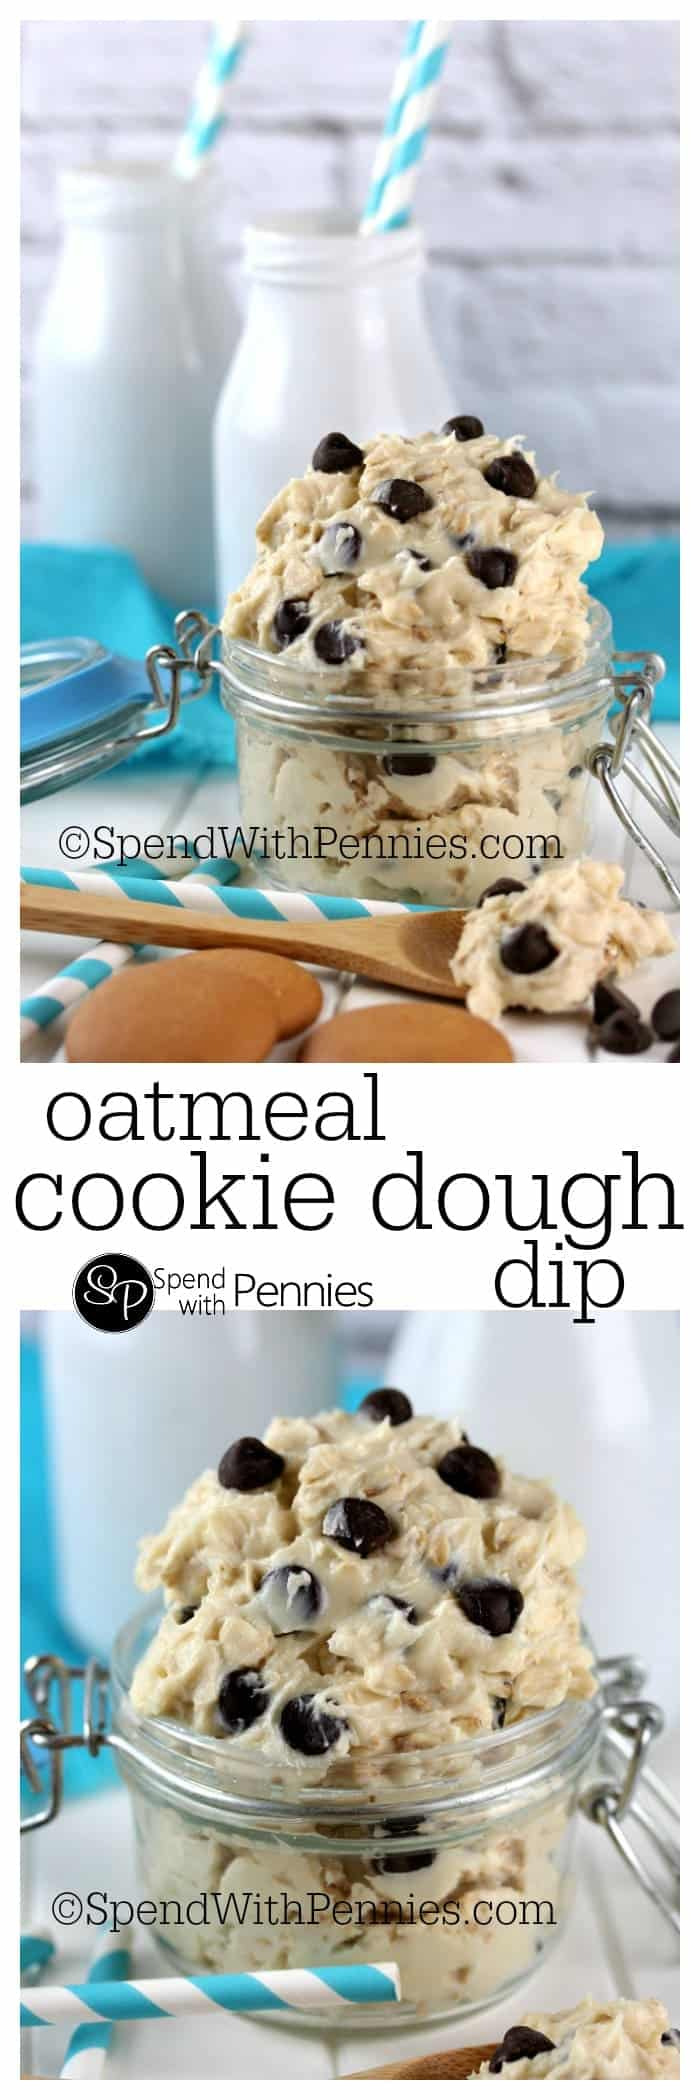 Oatmeal Cookie Dough Dip! Why make cookies when you really just want to eat the dough? This dip is deliciously easy to make... and it's eggless!